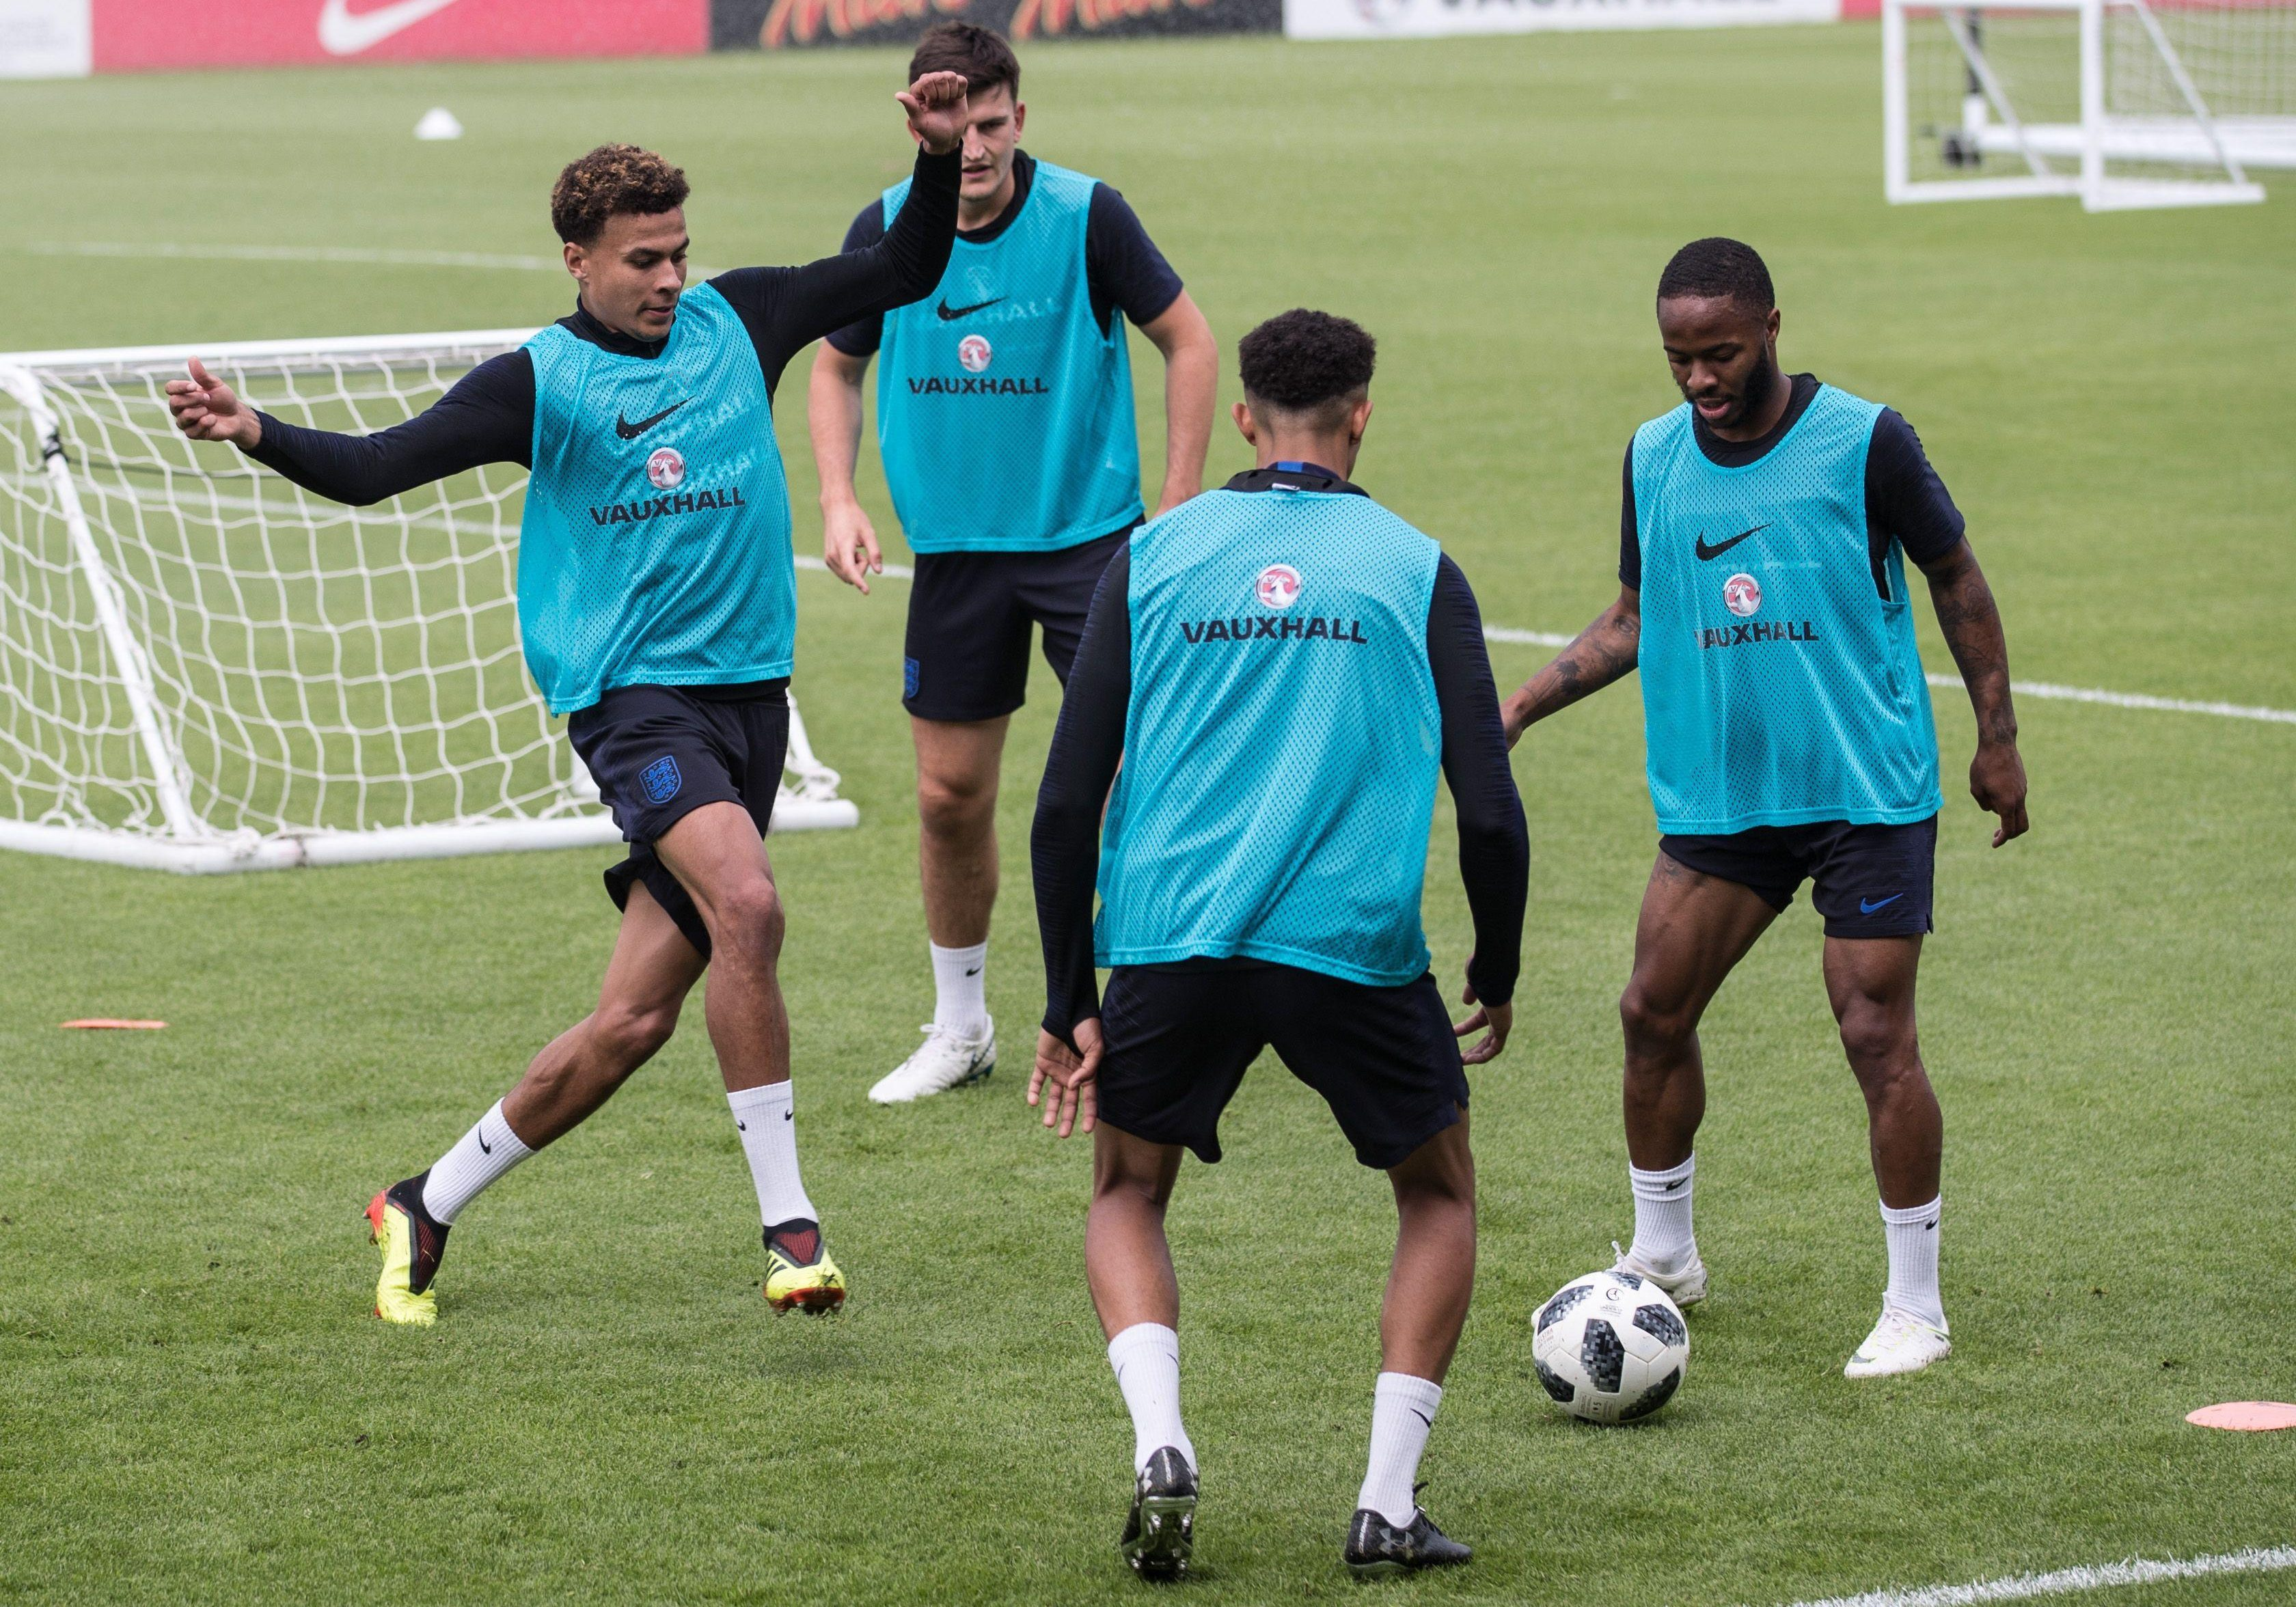 Dele Alli, Harry Maguire, Trent Alexander-Arnold and Raheem Sterling in action at St George's Park